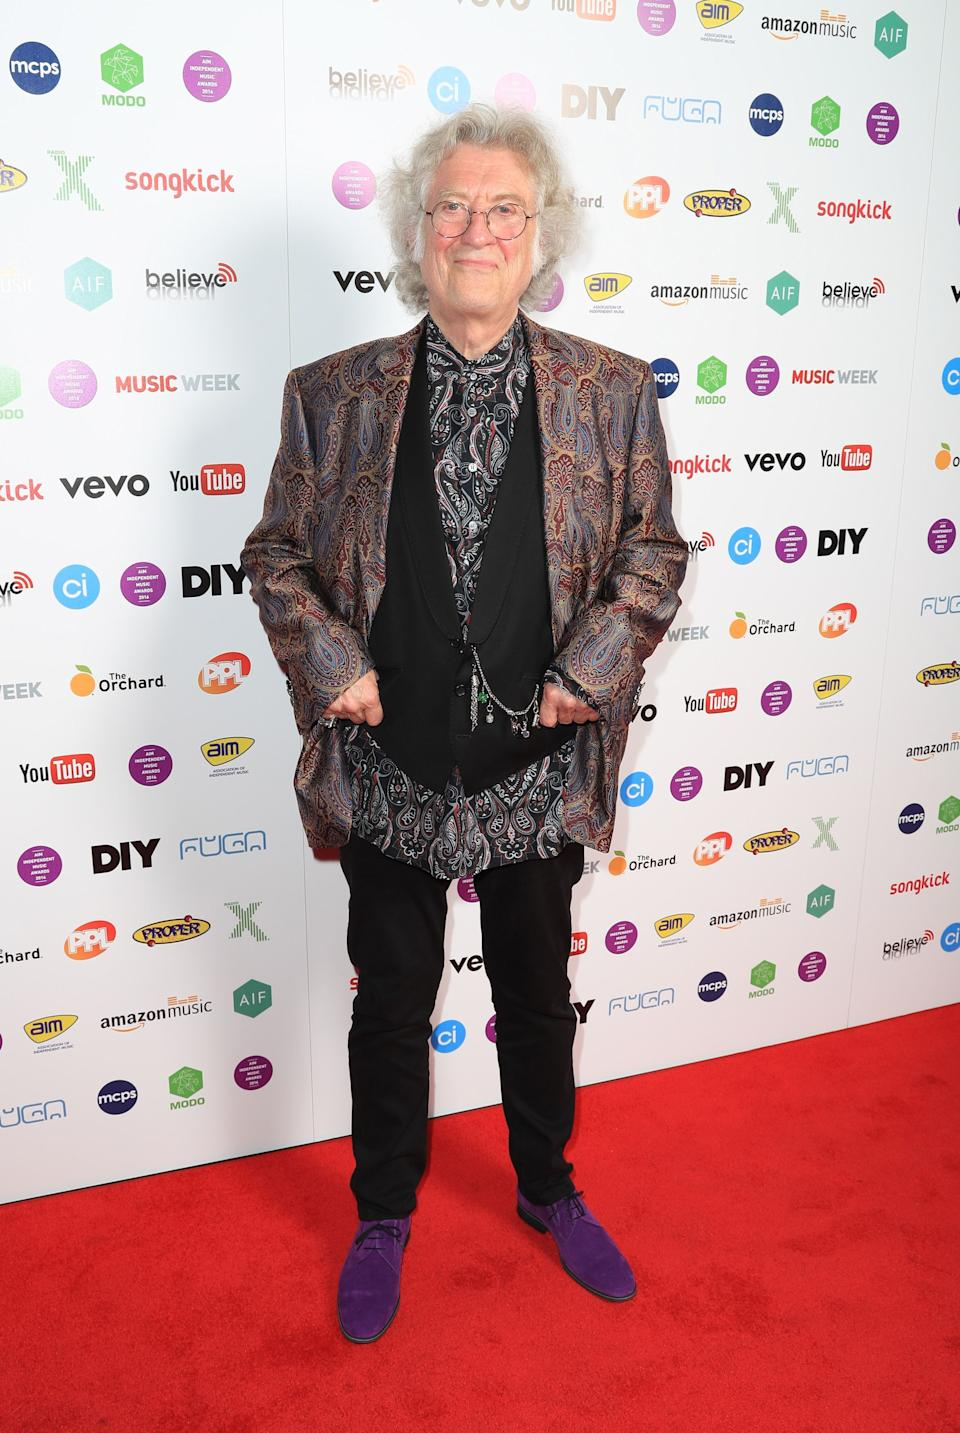 Noddy Holder attends the AIM Awards at The Brewery in London.